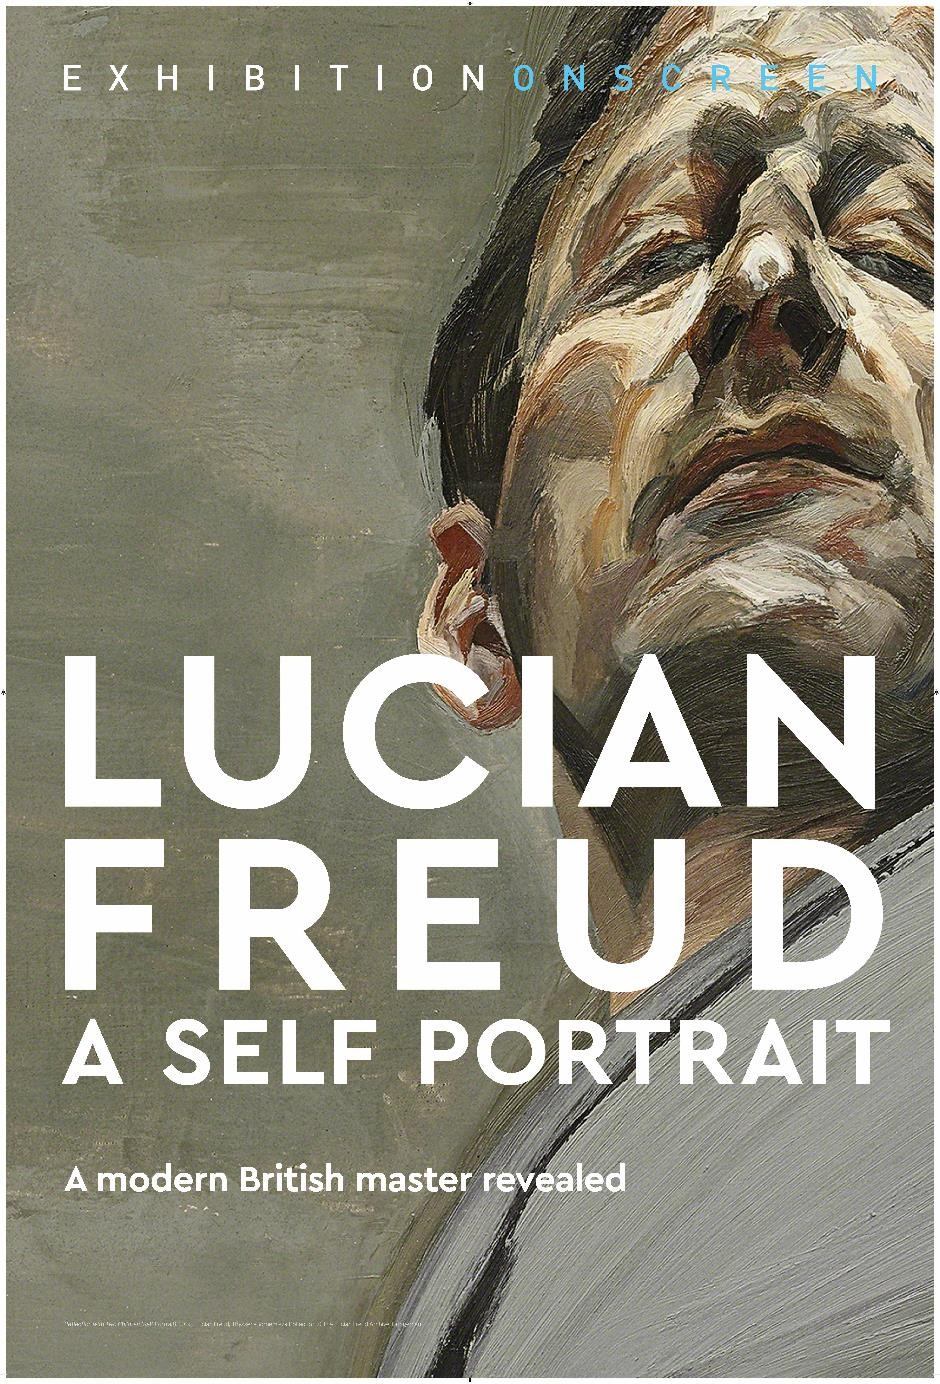 [EOS] LUCIAN FREUD: A SELF PORTRAIT